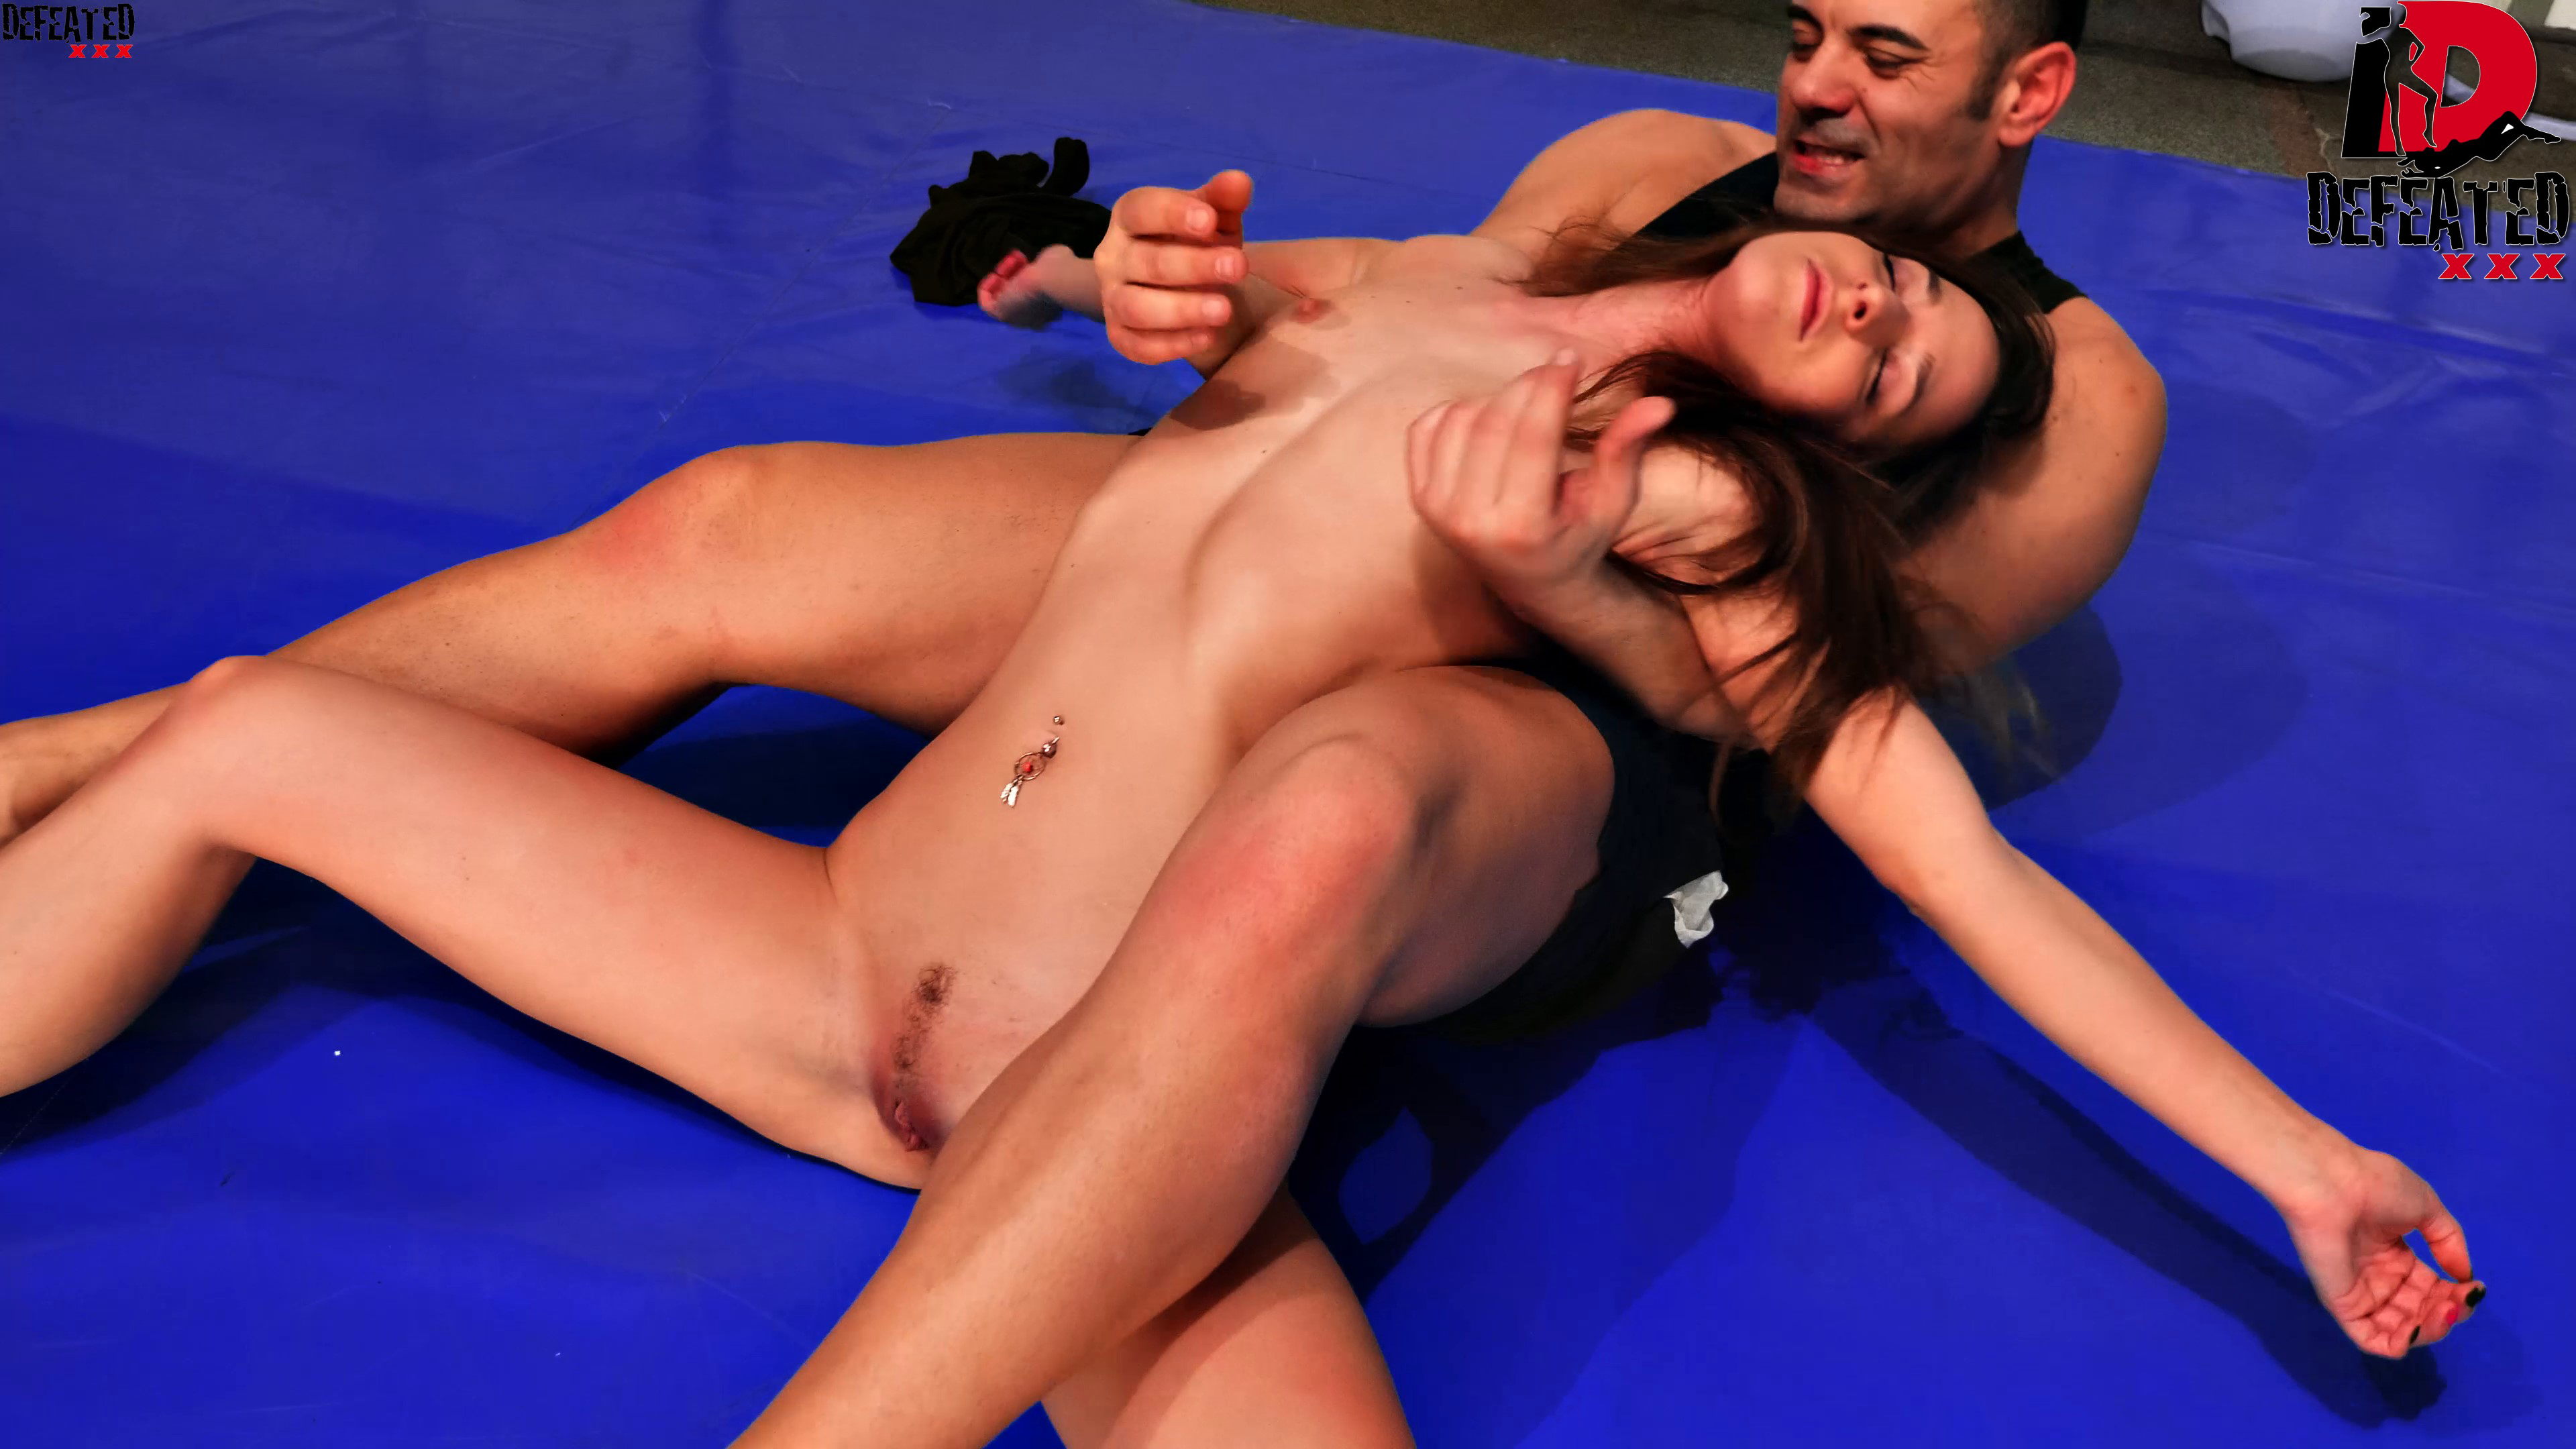 DEFEATED-MXD66---Amirah-Antonio-(52)